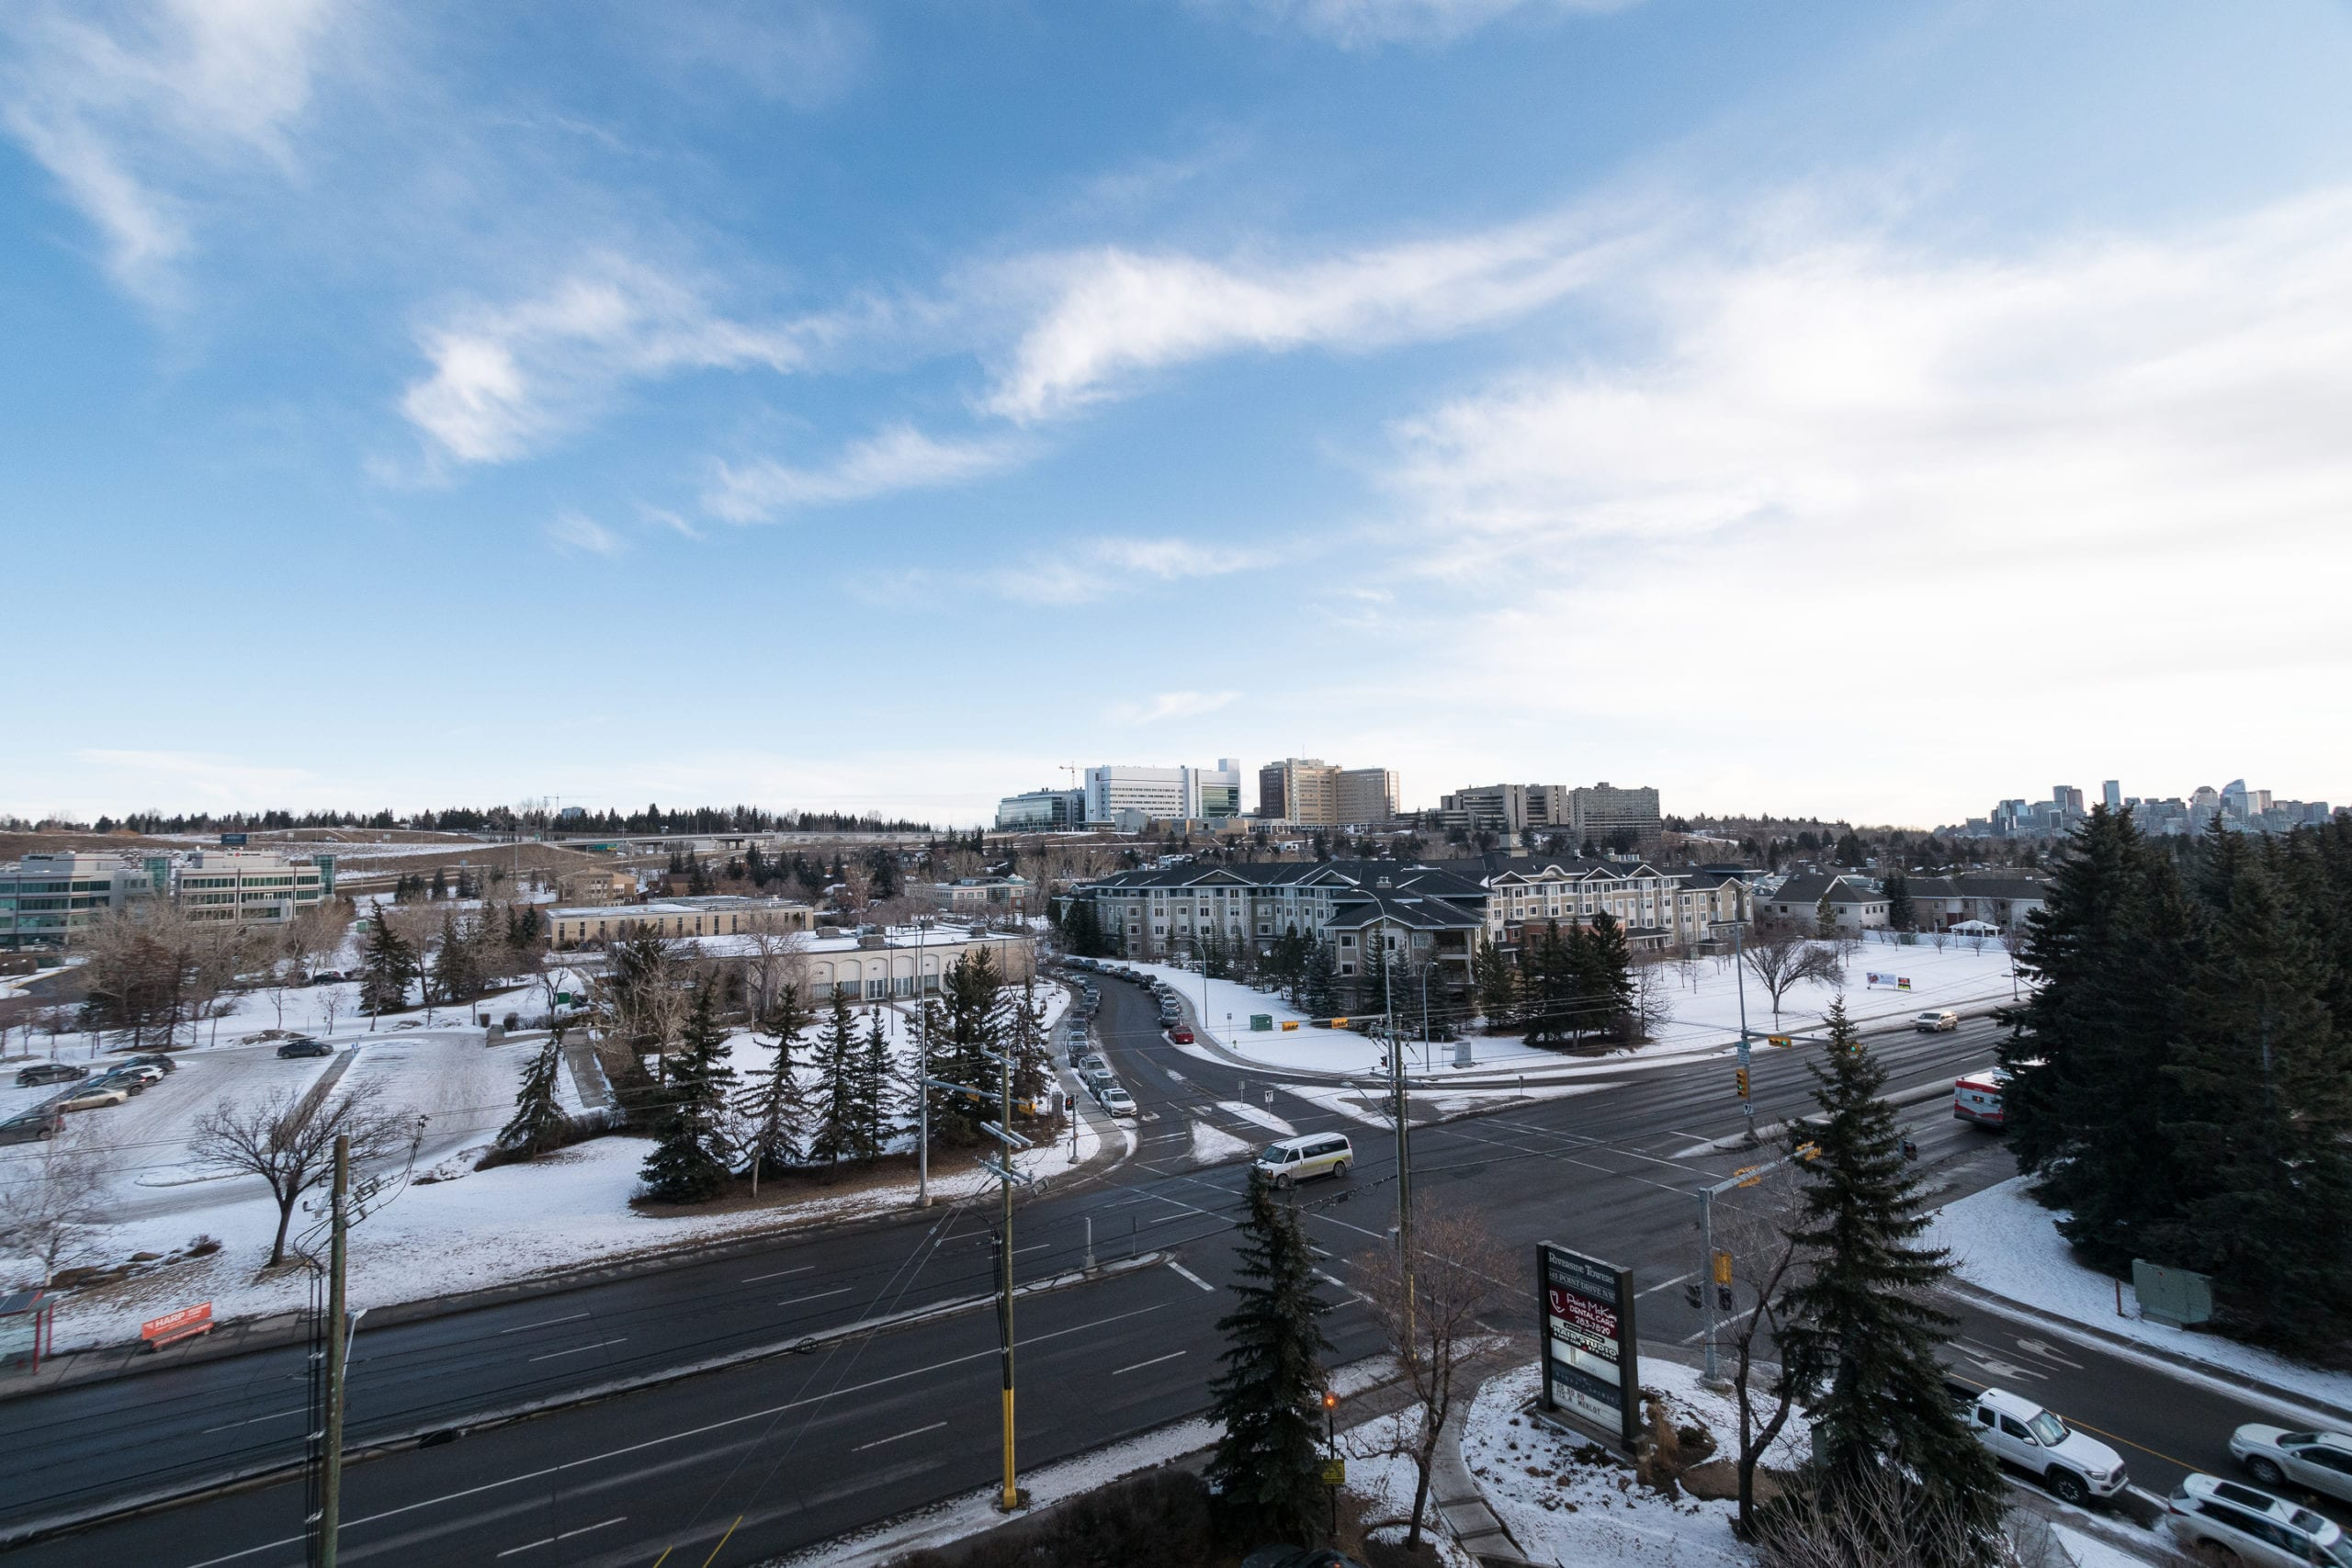 Hello Gorgeous - #705-145 point drive NW, Calgary AB - Tara Molina Real Estate (12 of 45)